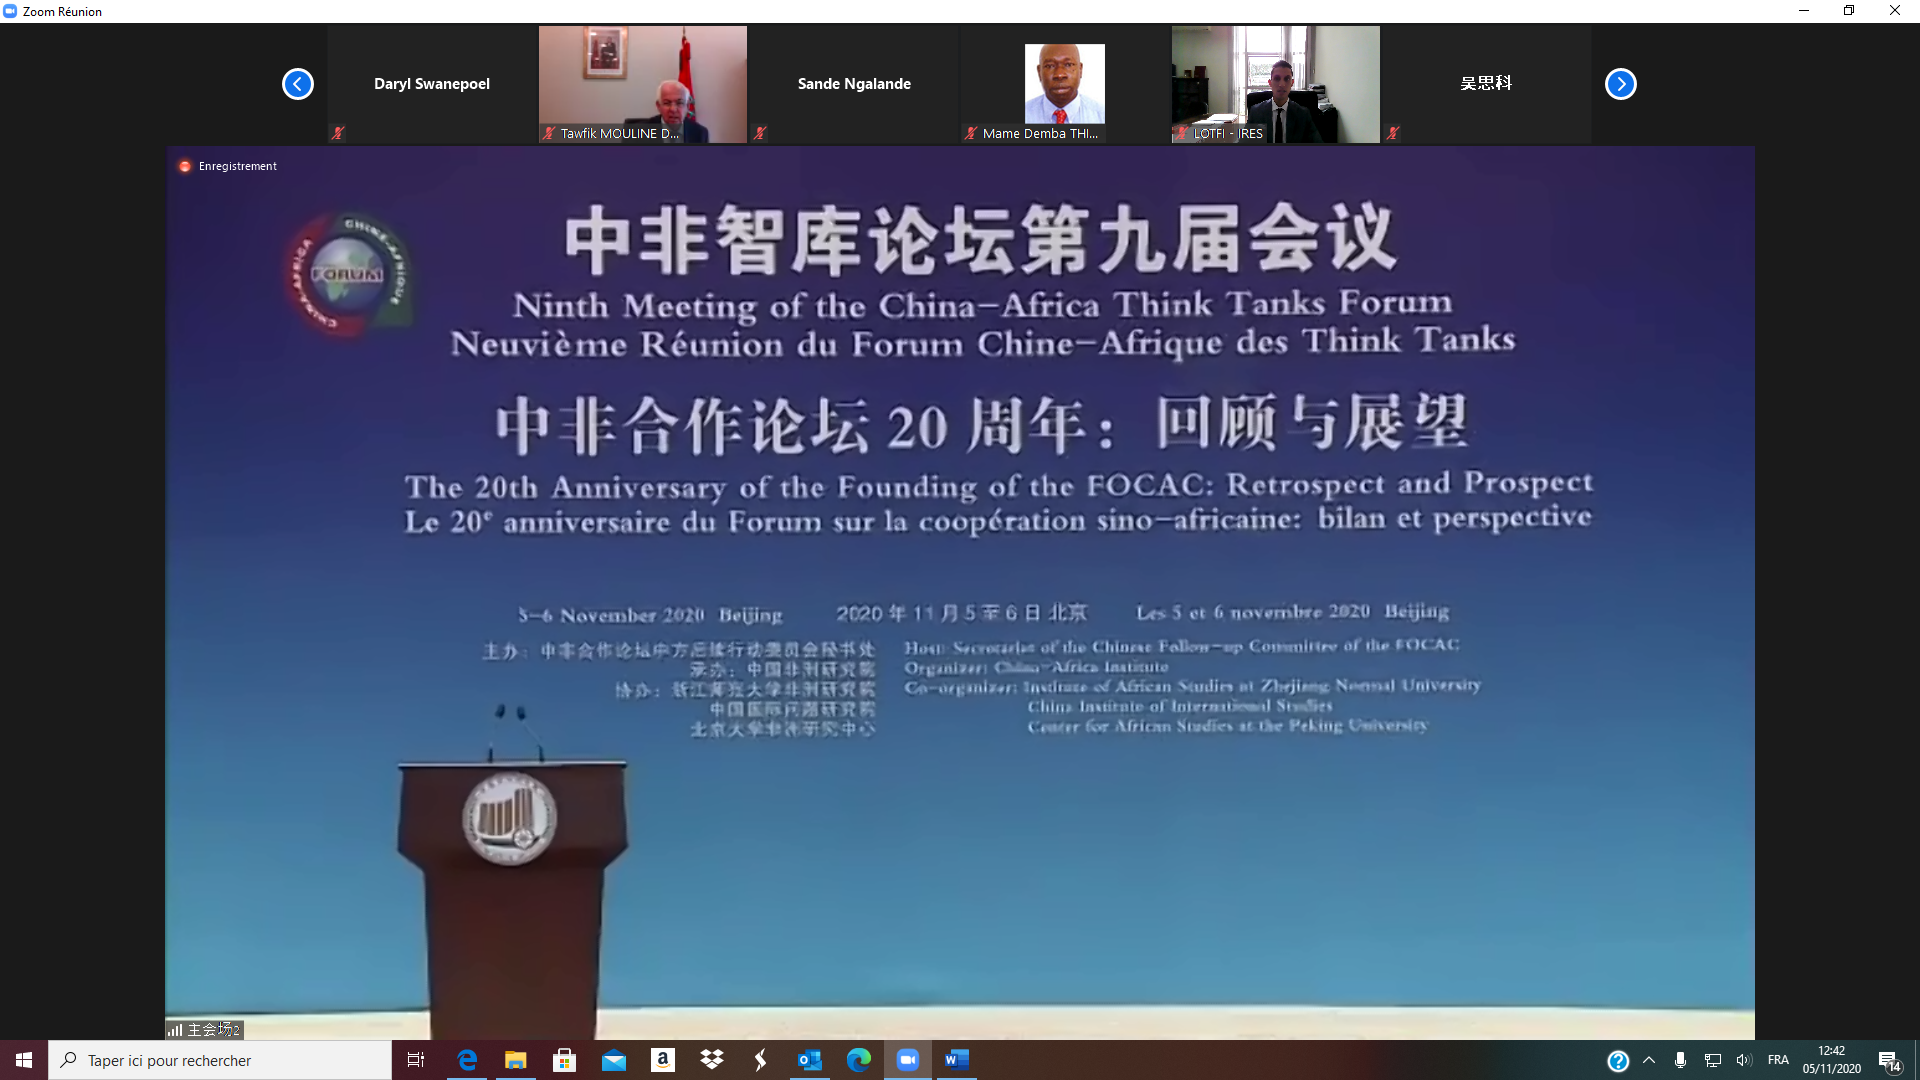 Click to enlarge image 9eme Sommet des think tanks sino-africains-9.png